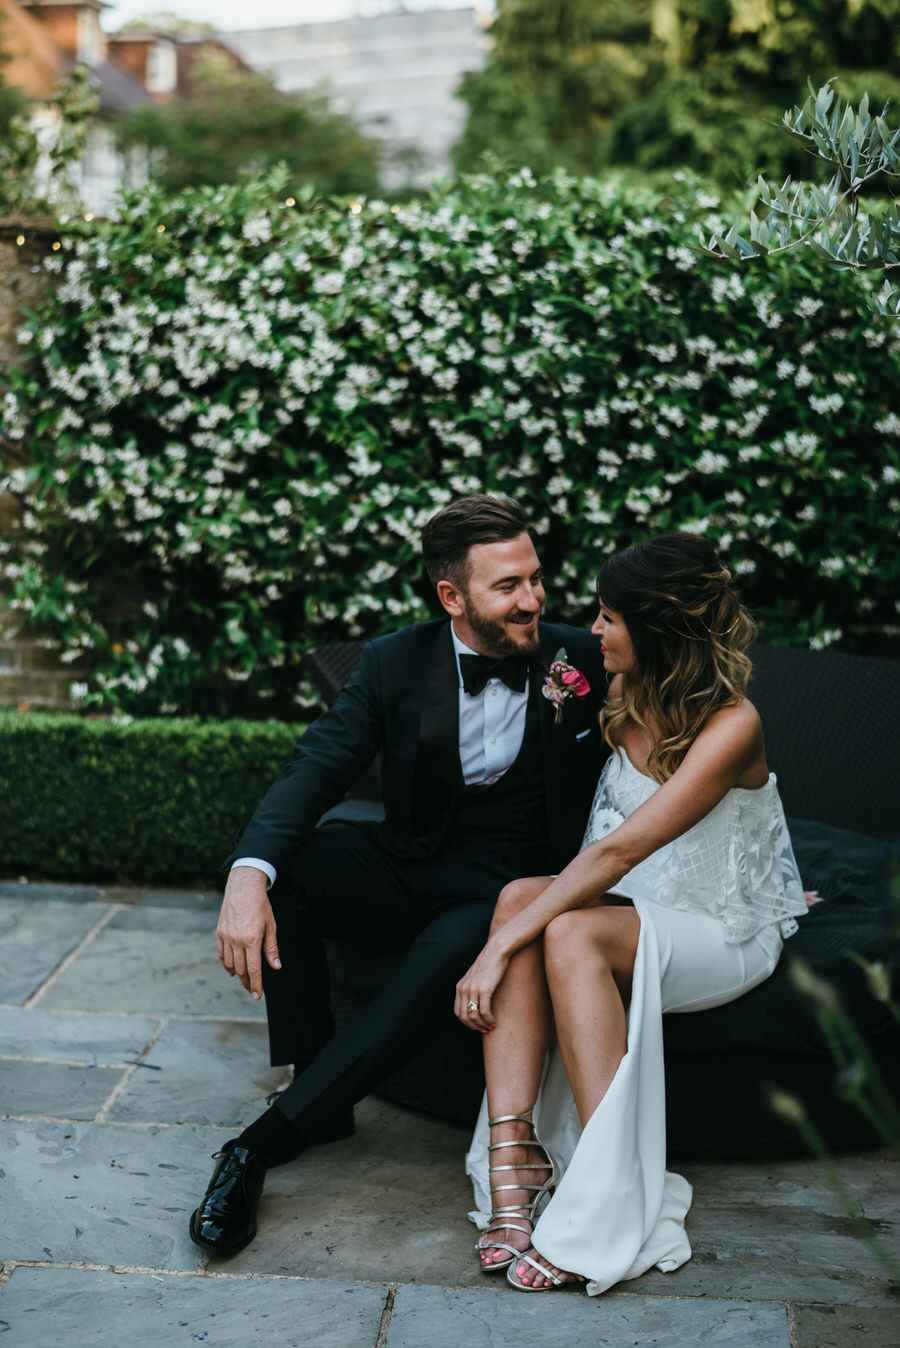 Super elegant and sophisticated black tie wedding in Hertfordshire, photographer credit Simon Biffen Photography (3)